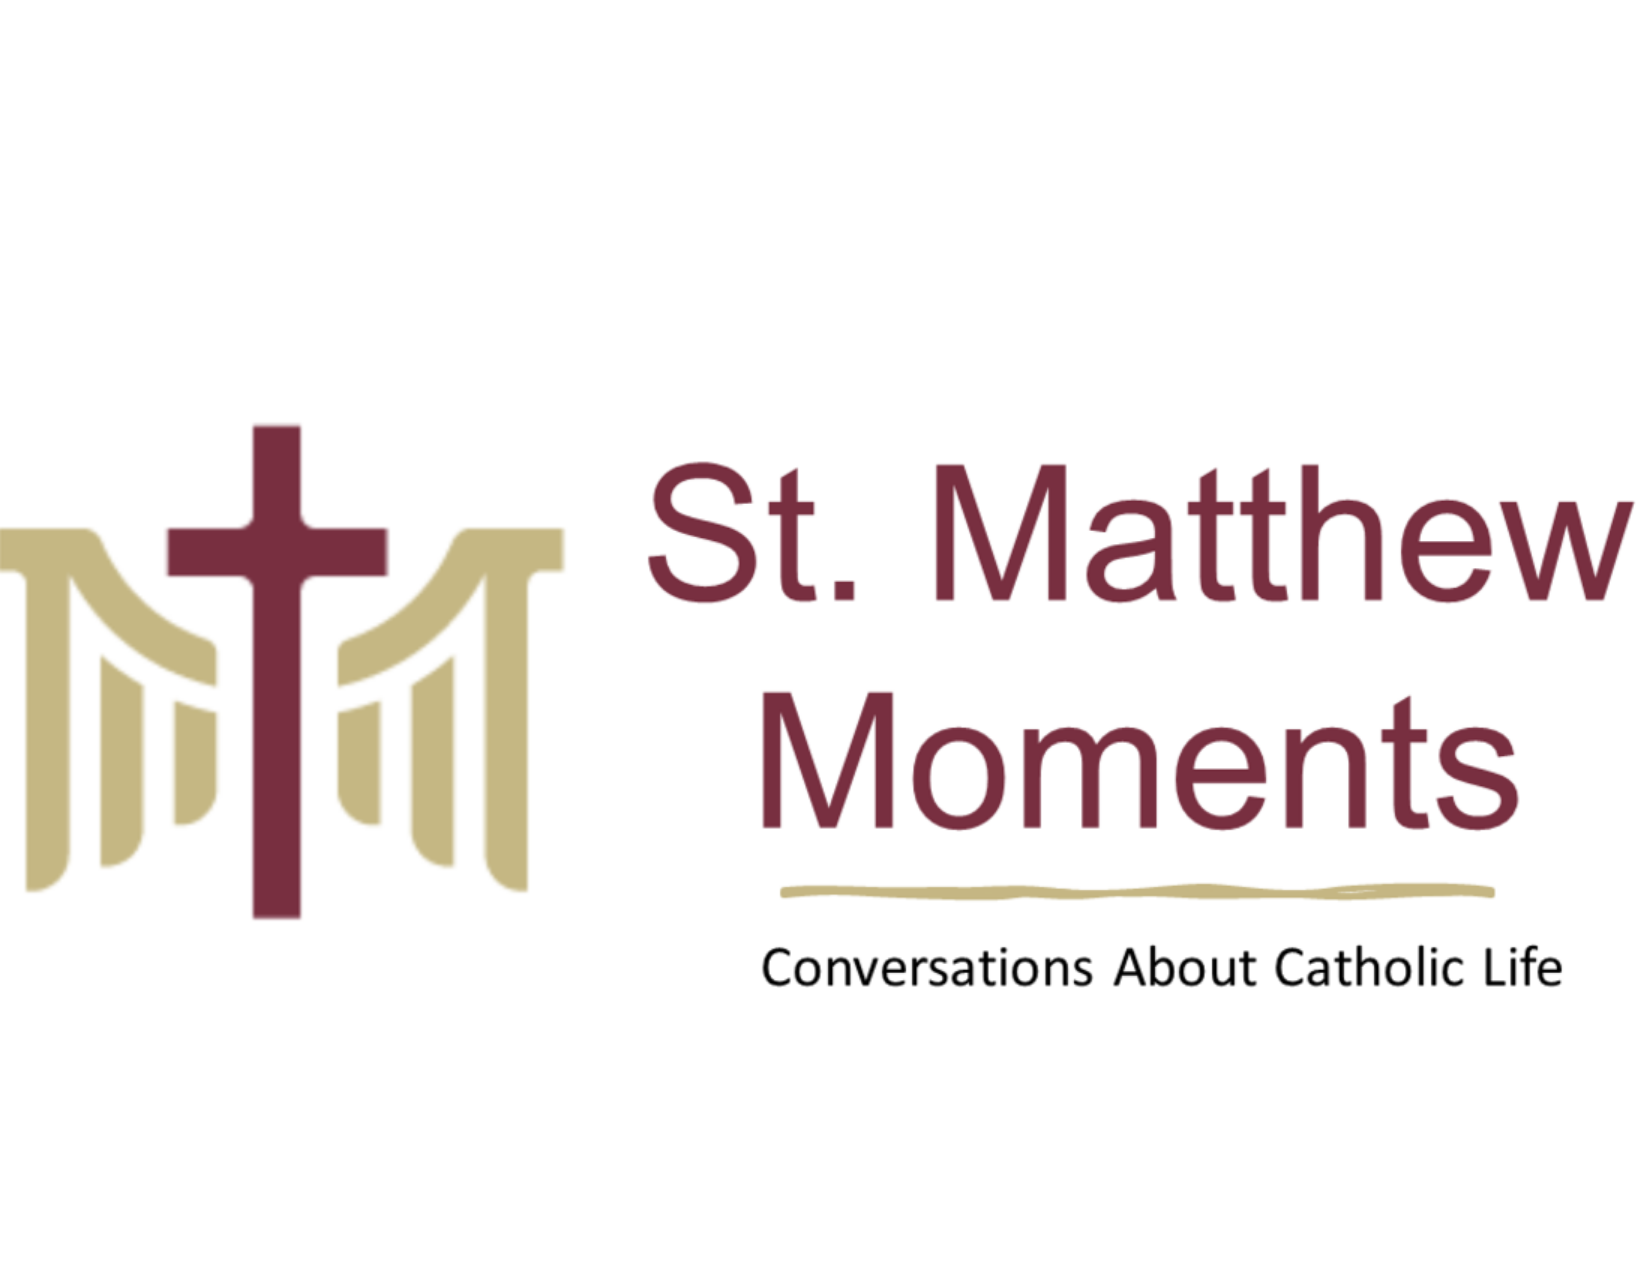 St. Matthew Moments is a podcast where the St. Matthew community comes together to discuss our faith, our families, and our lives. We hope you'll listen along on this journey to grow in faith, grow closer to Christ and your St. Matthew community.